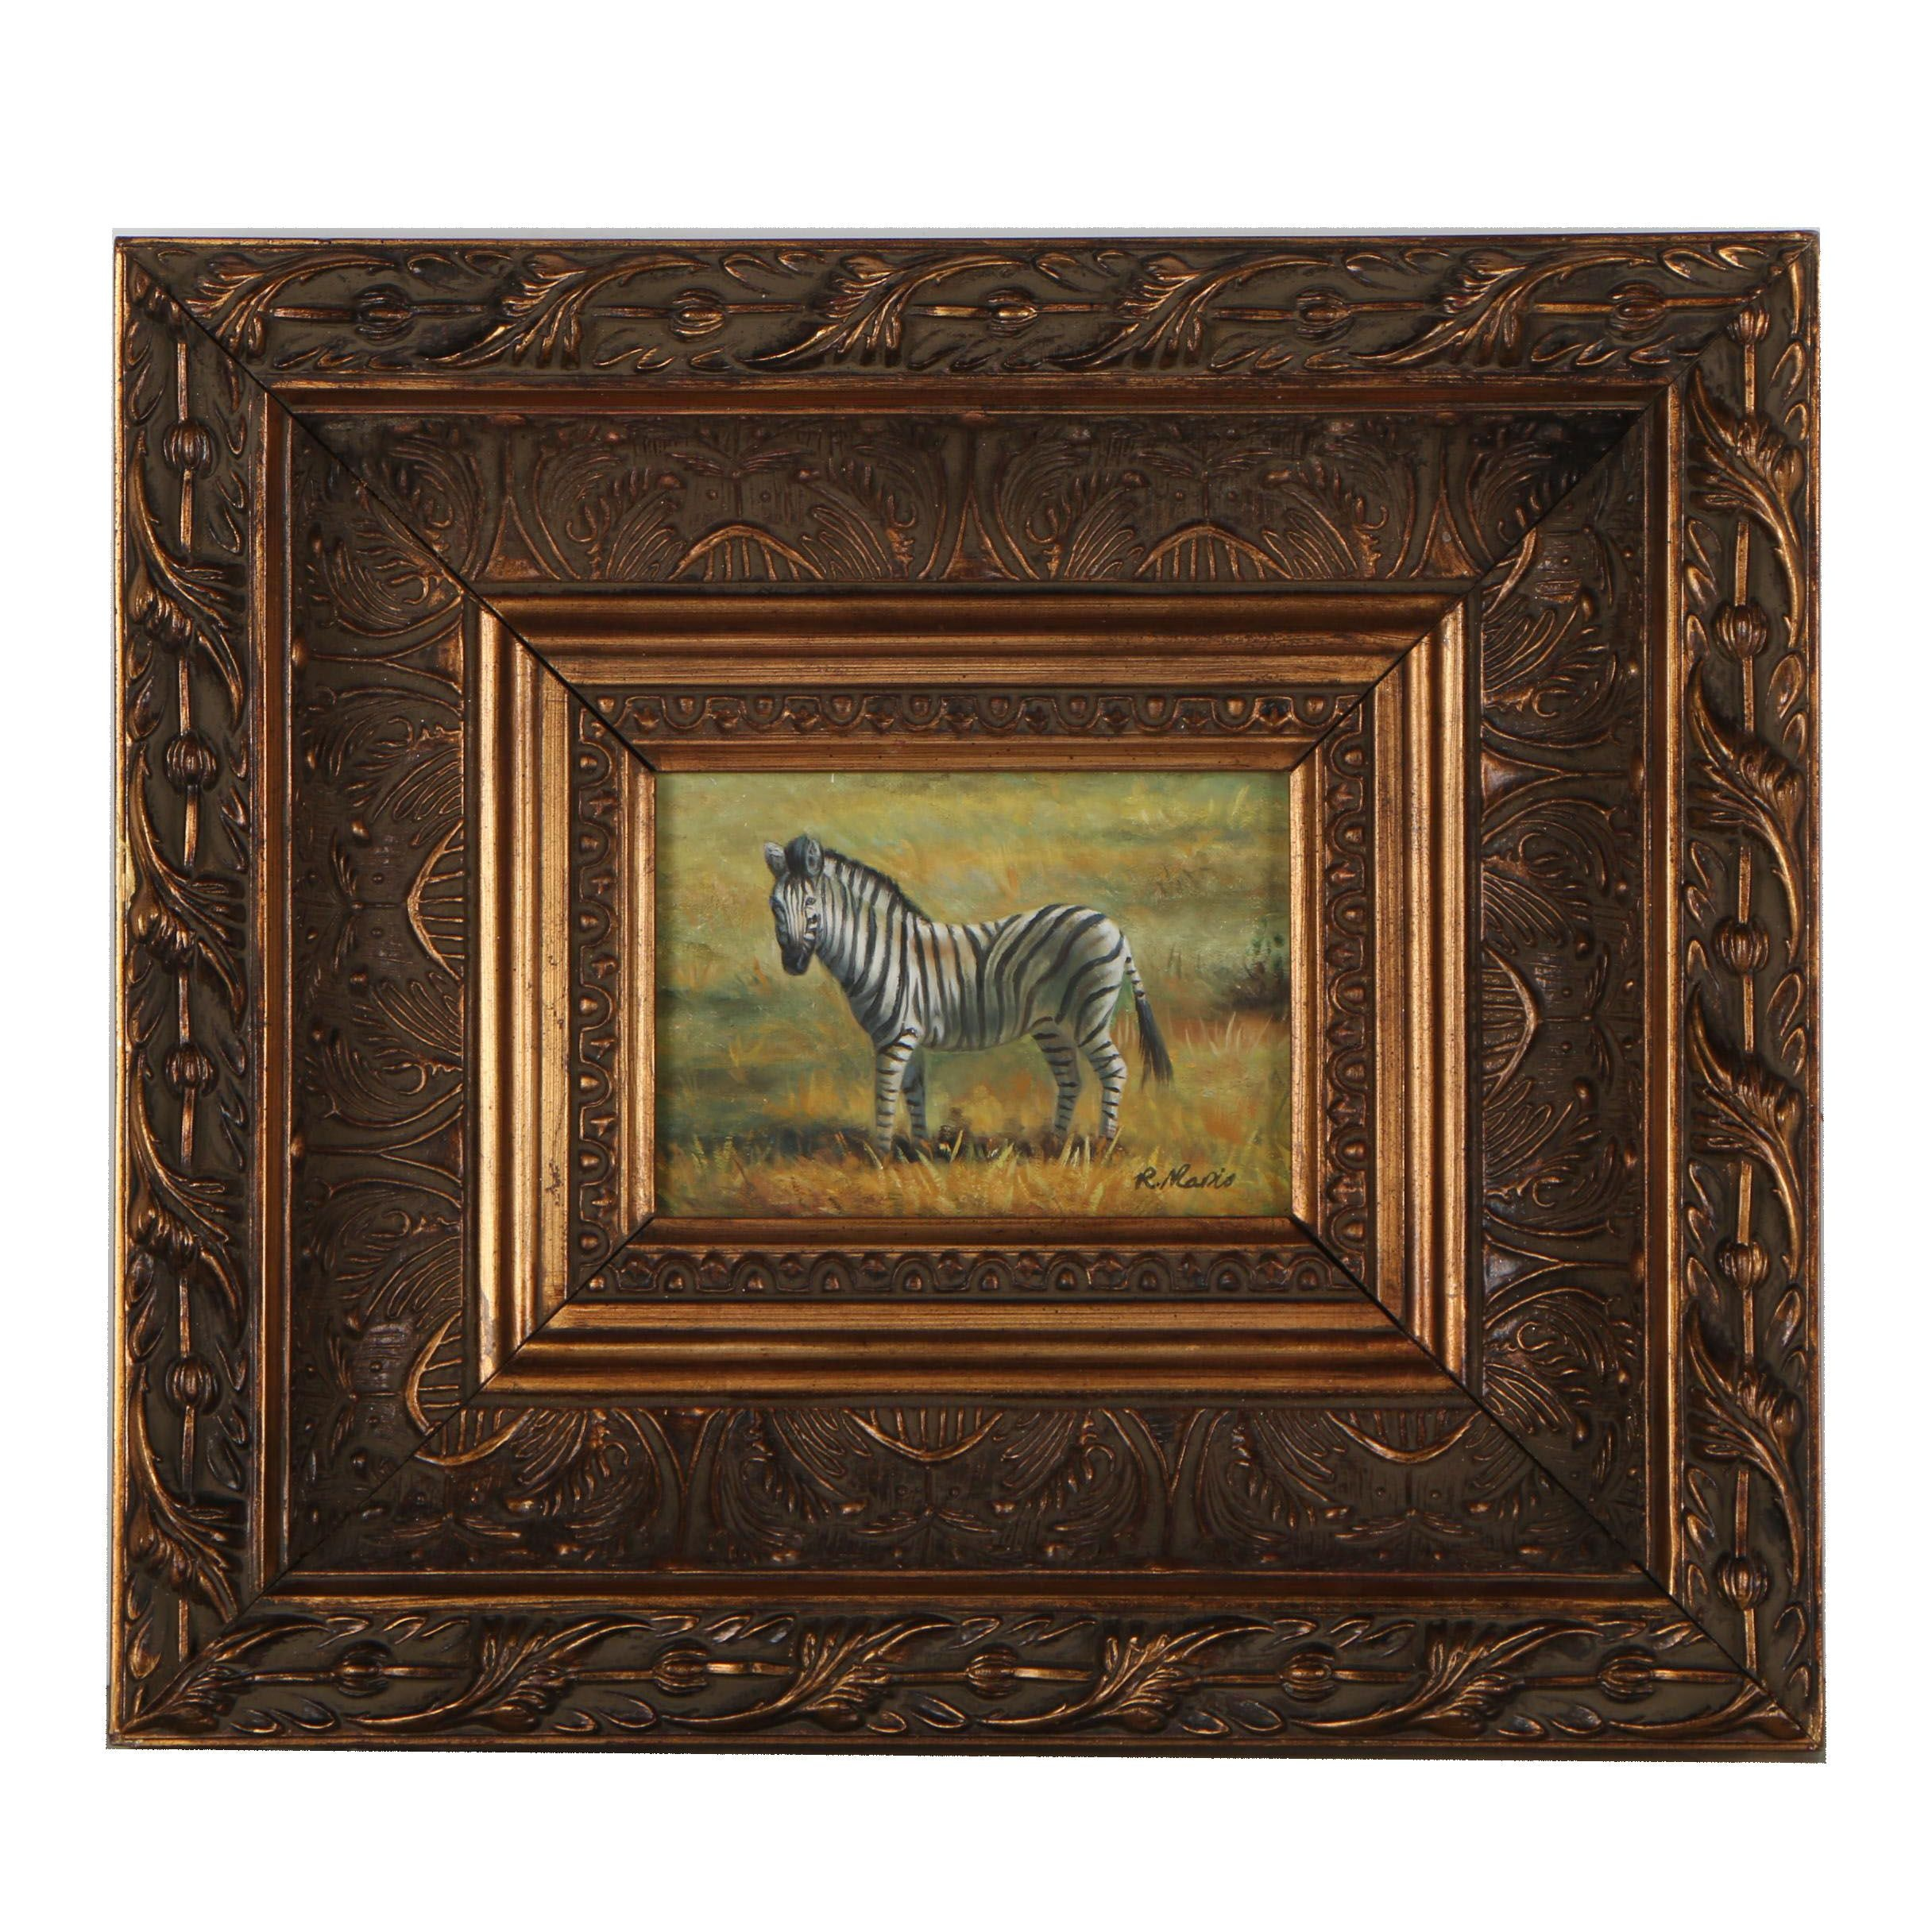 R. Mario Oil Painting of a Zebra